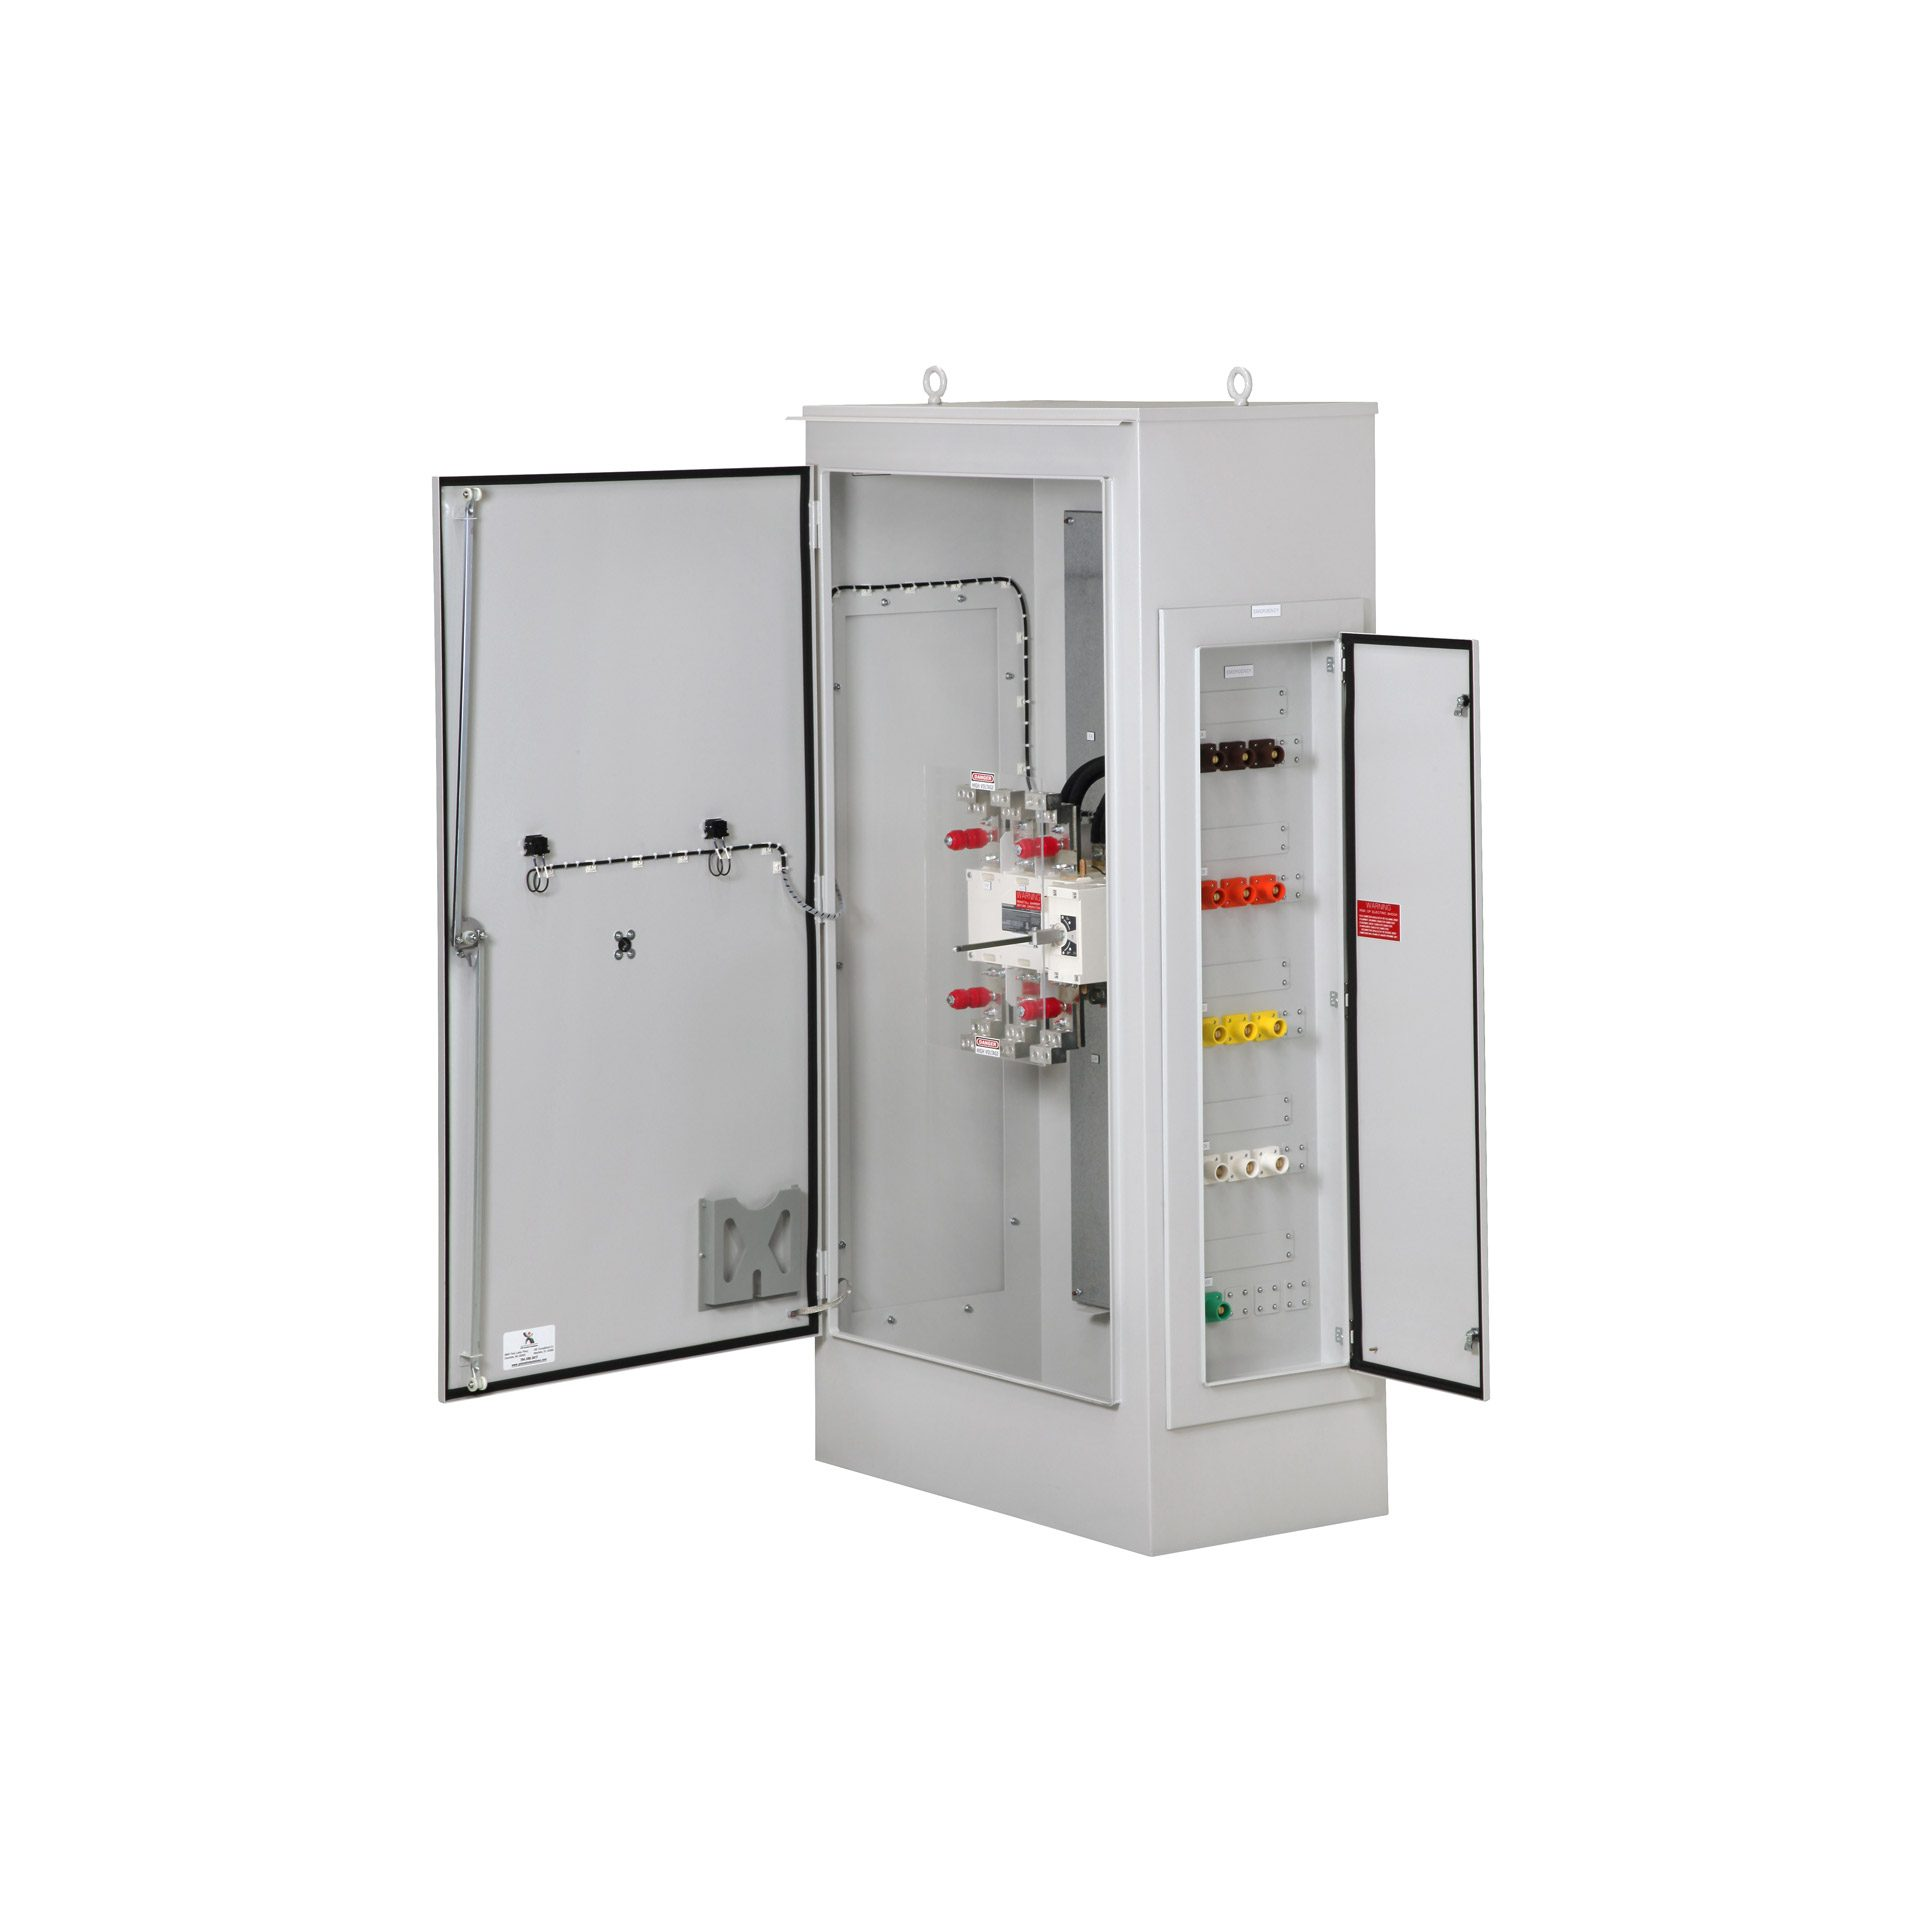 Psi Manual Transfer Switch With Rotary 200 3000 Amps 30 Amp Fuse Box Safety Combination Cam Lok Receptacles